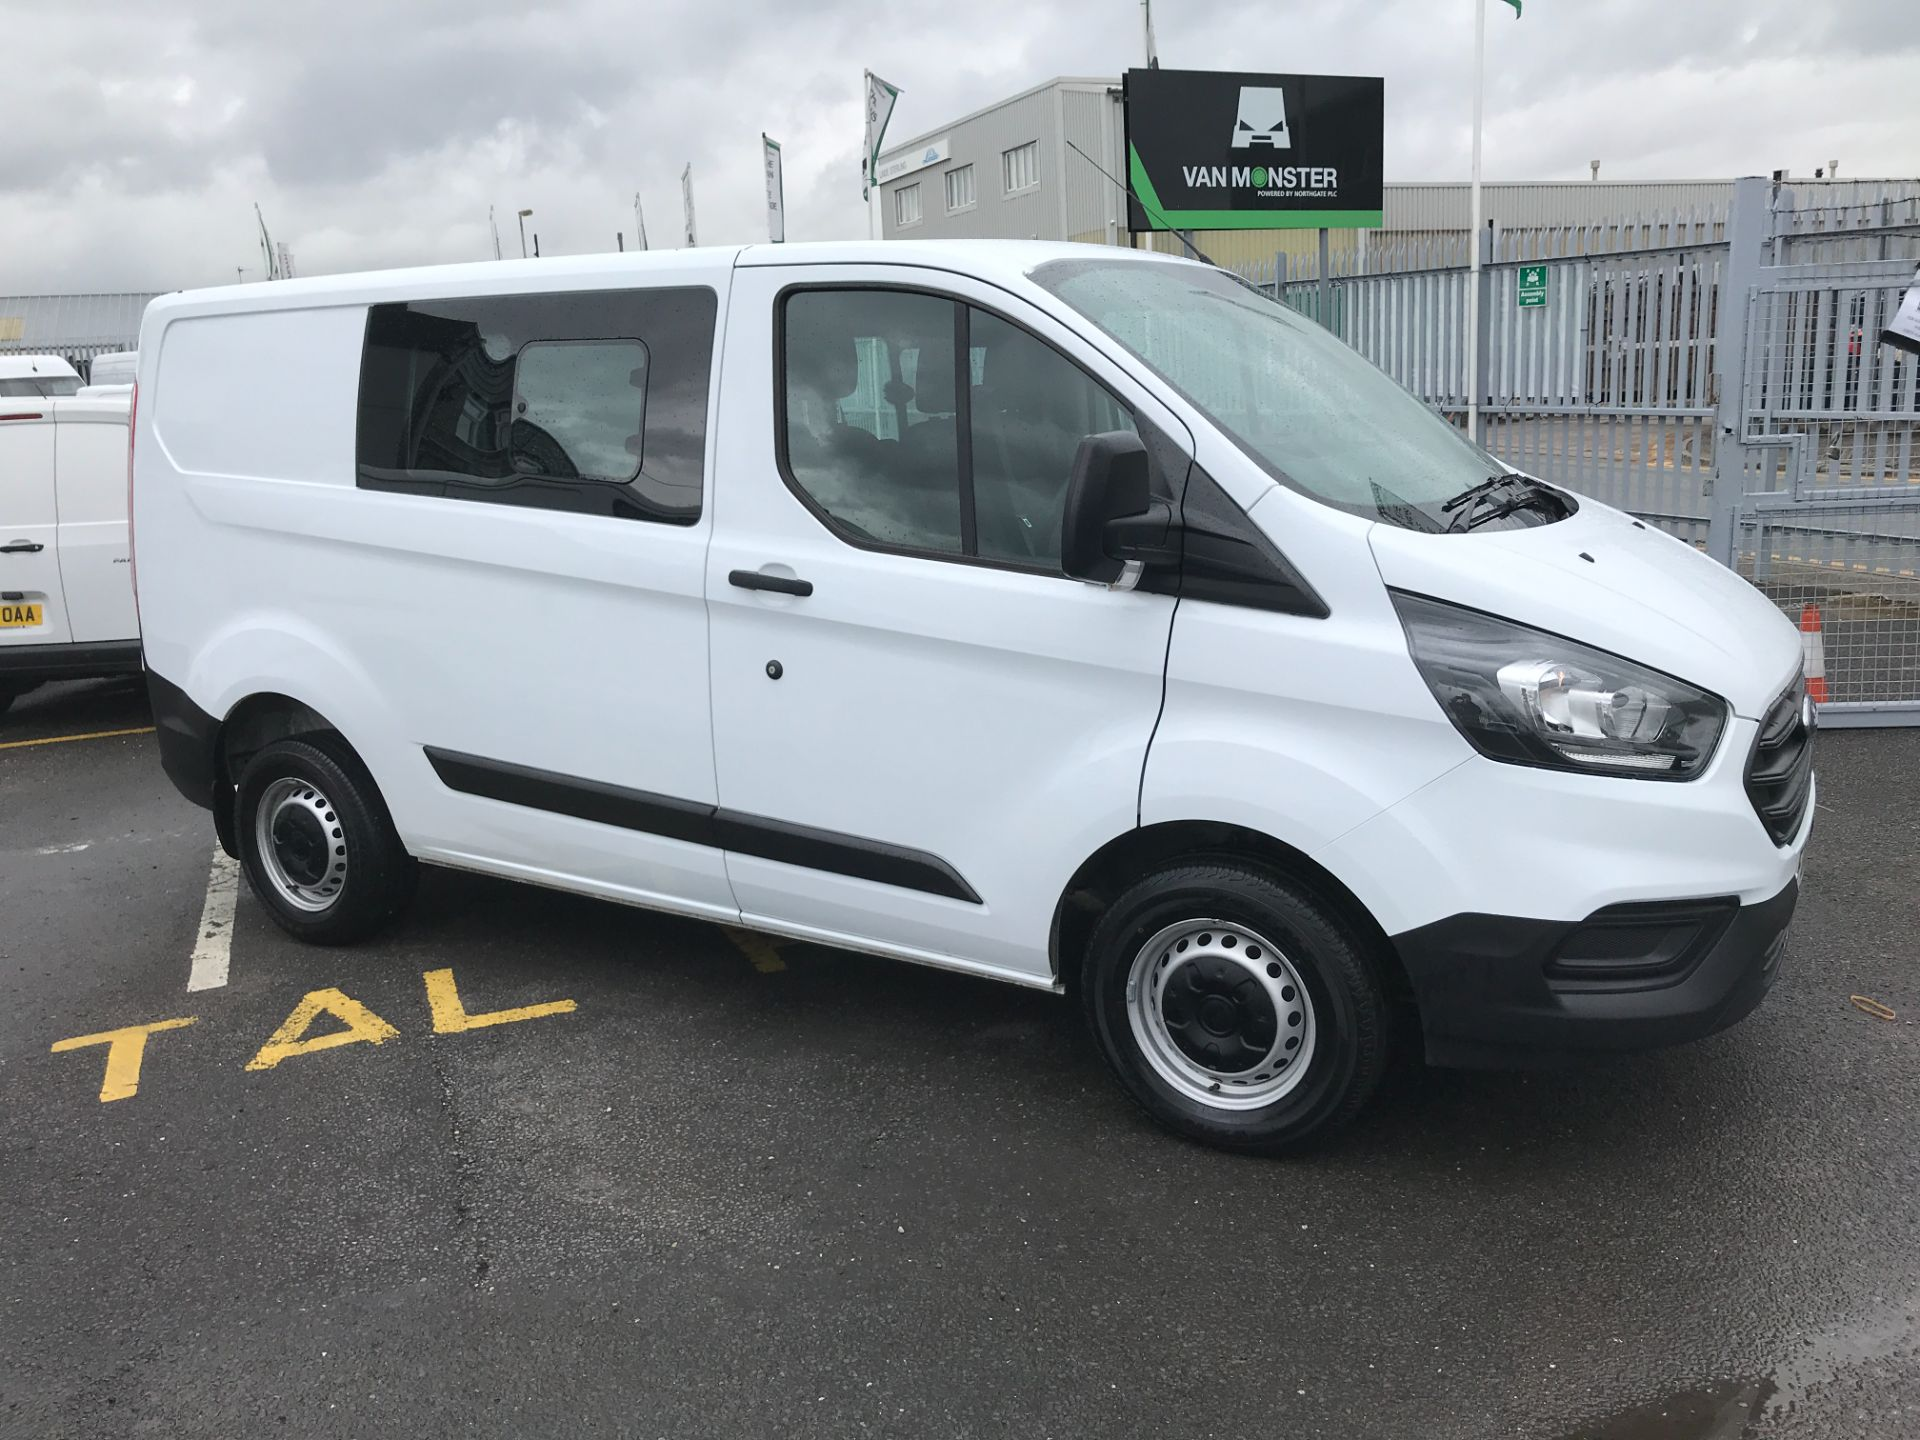 2018 Ford Transit Custom 300 L1 2.0TDCI 105PS LOW ROOF EURO 6 DOUBLE CAB (FD18WRE) Image 14